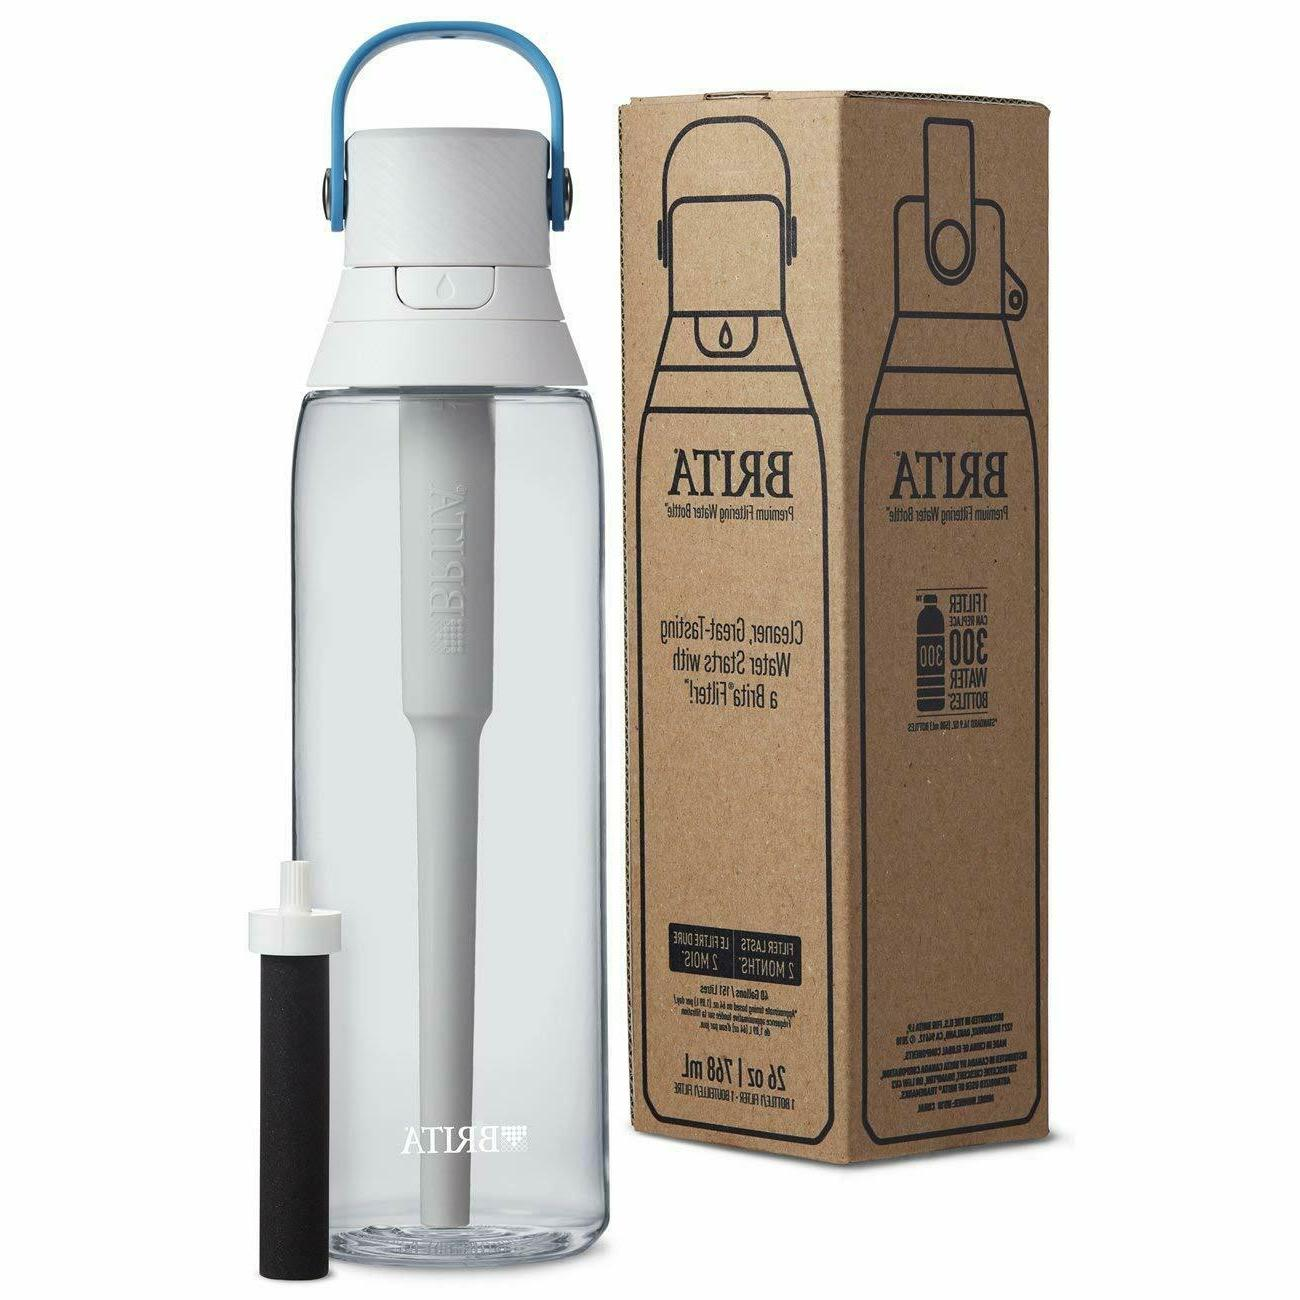 Brita 26 Ounce Premium Filtering Water with Filter